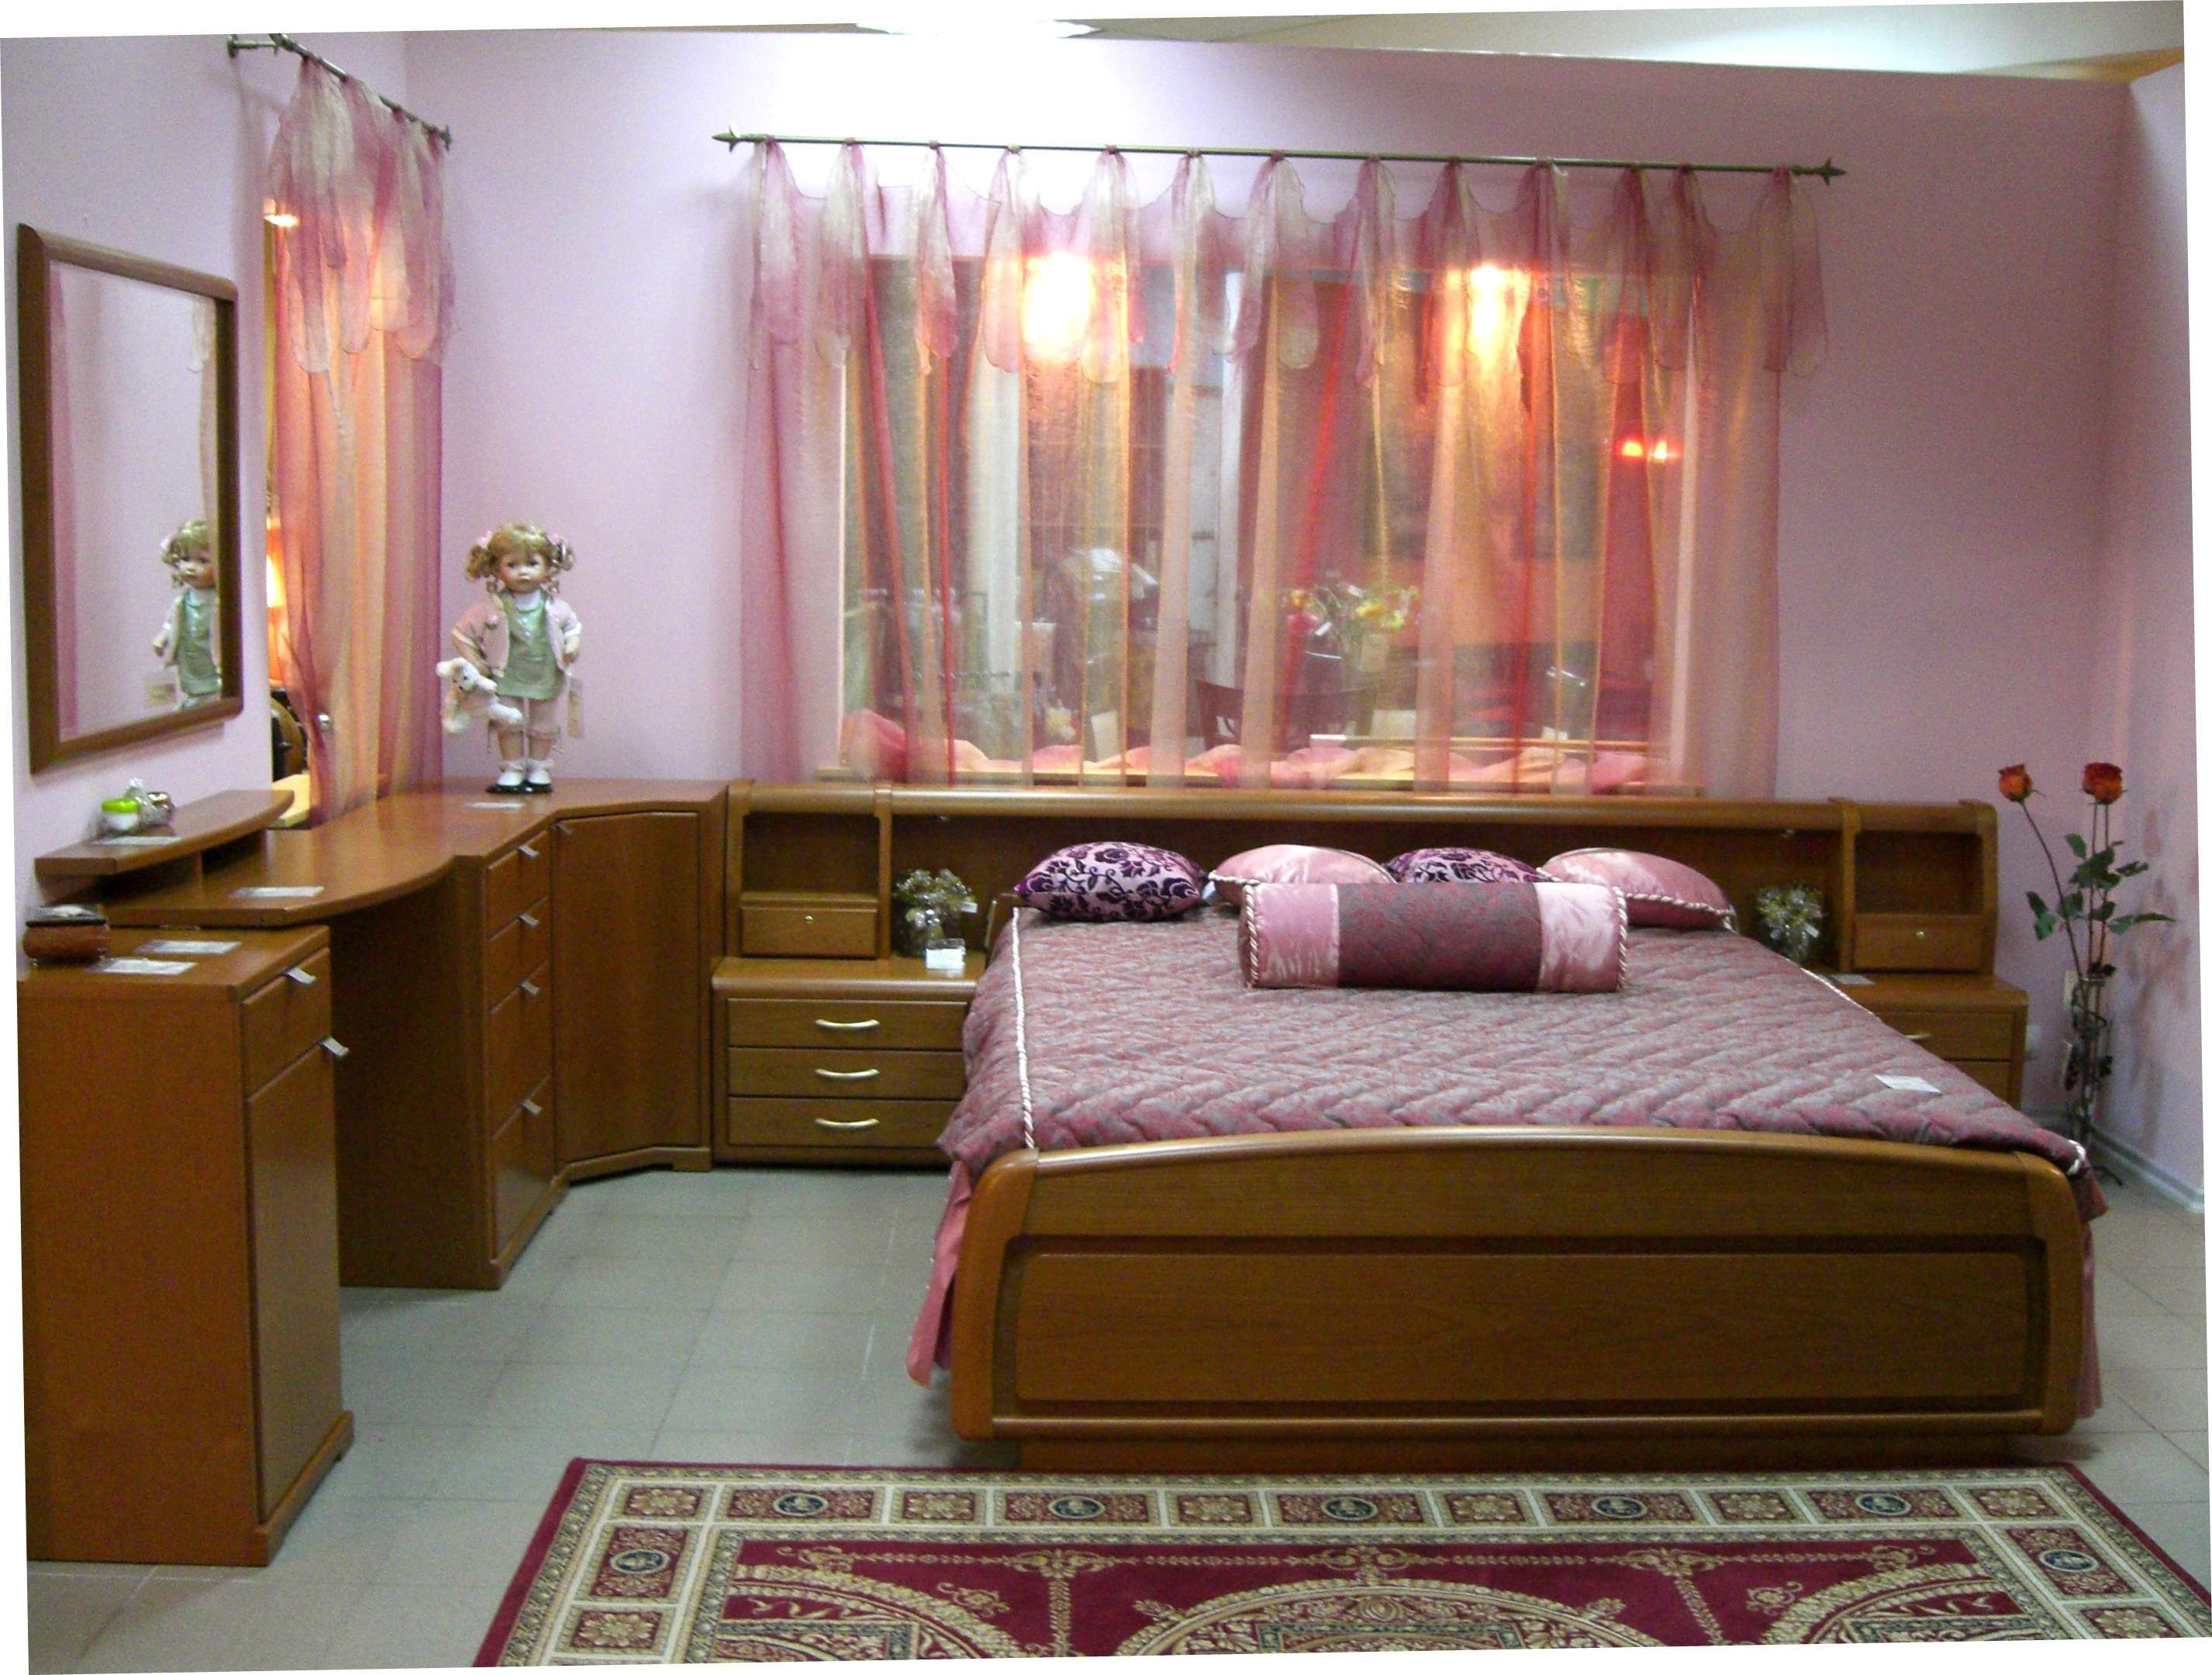 interior design tips tricks helpful advice kerala style home